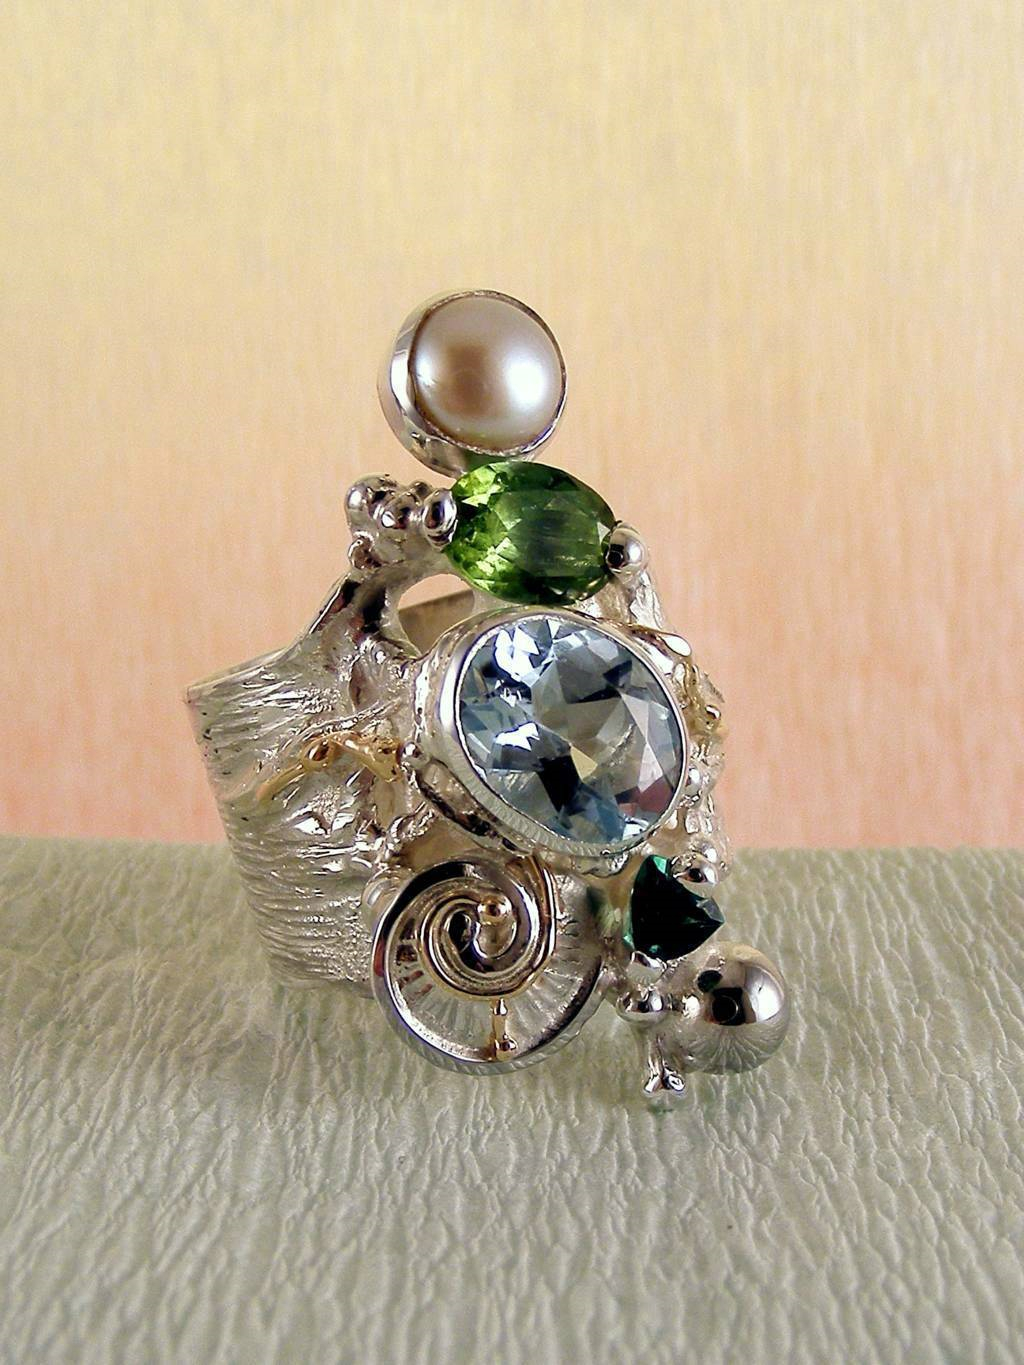 one of a kind jewellery, handmade artisan jewellery, mixed metal artisan jewellery, artisan jewellery with gemstones and pearls, Band #Ring 1441